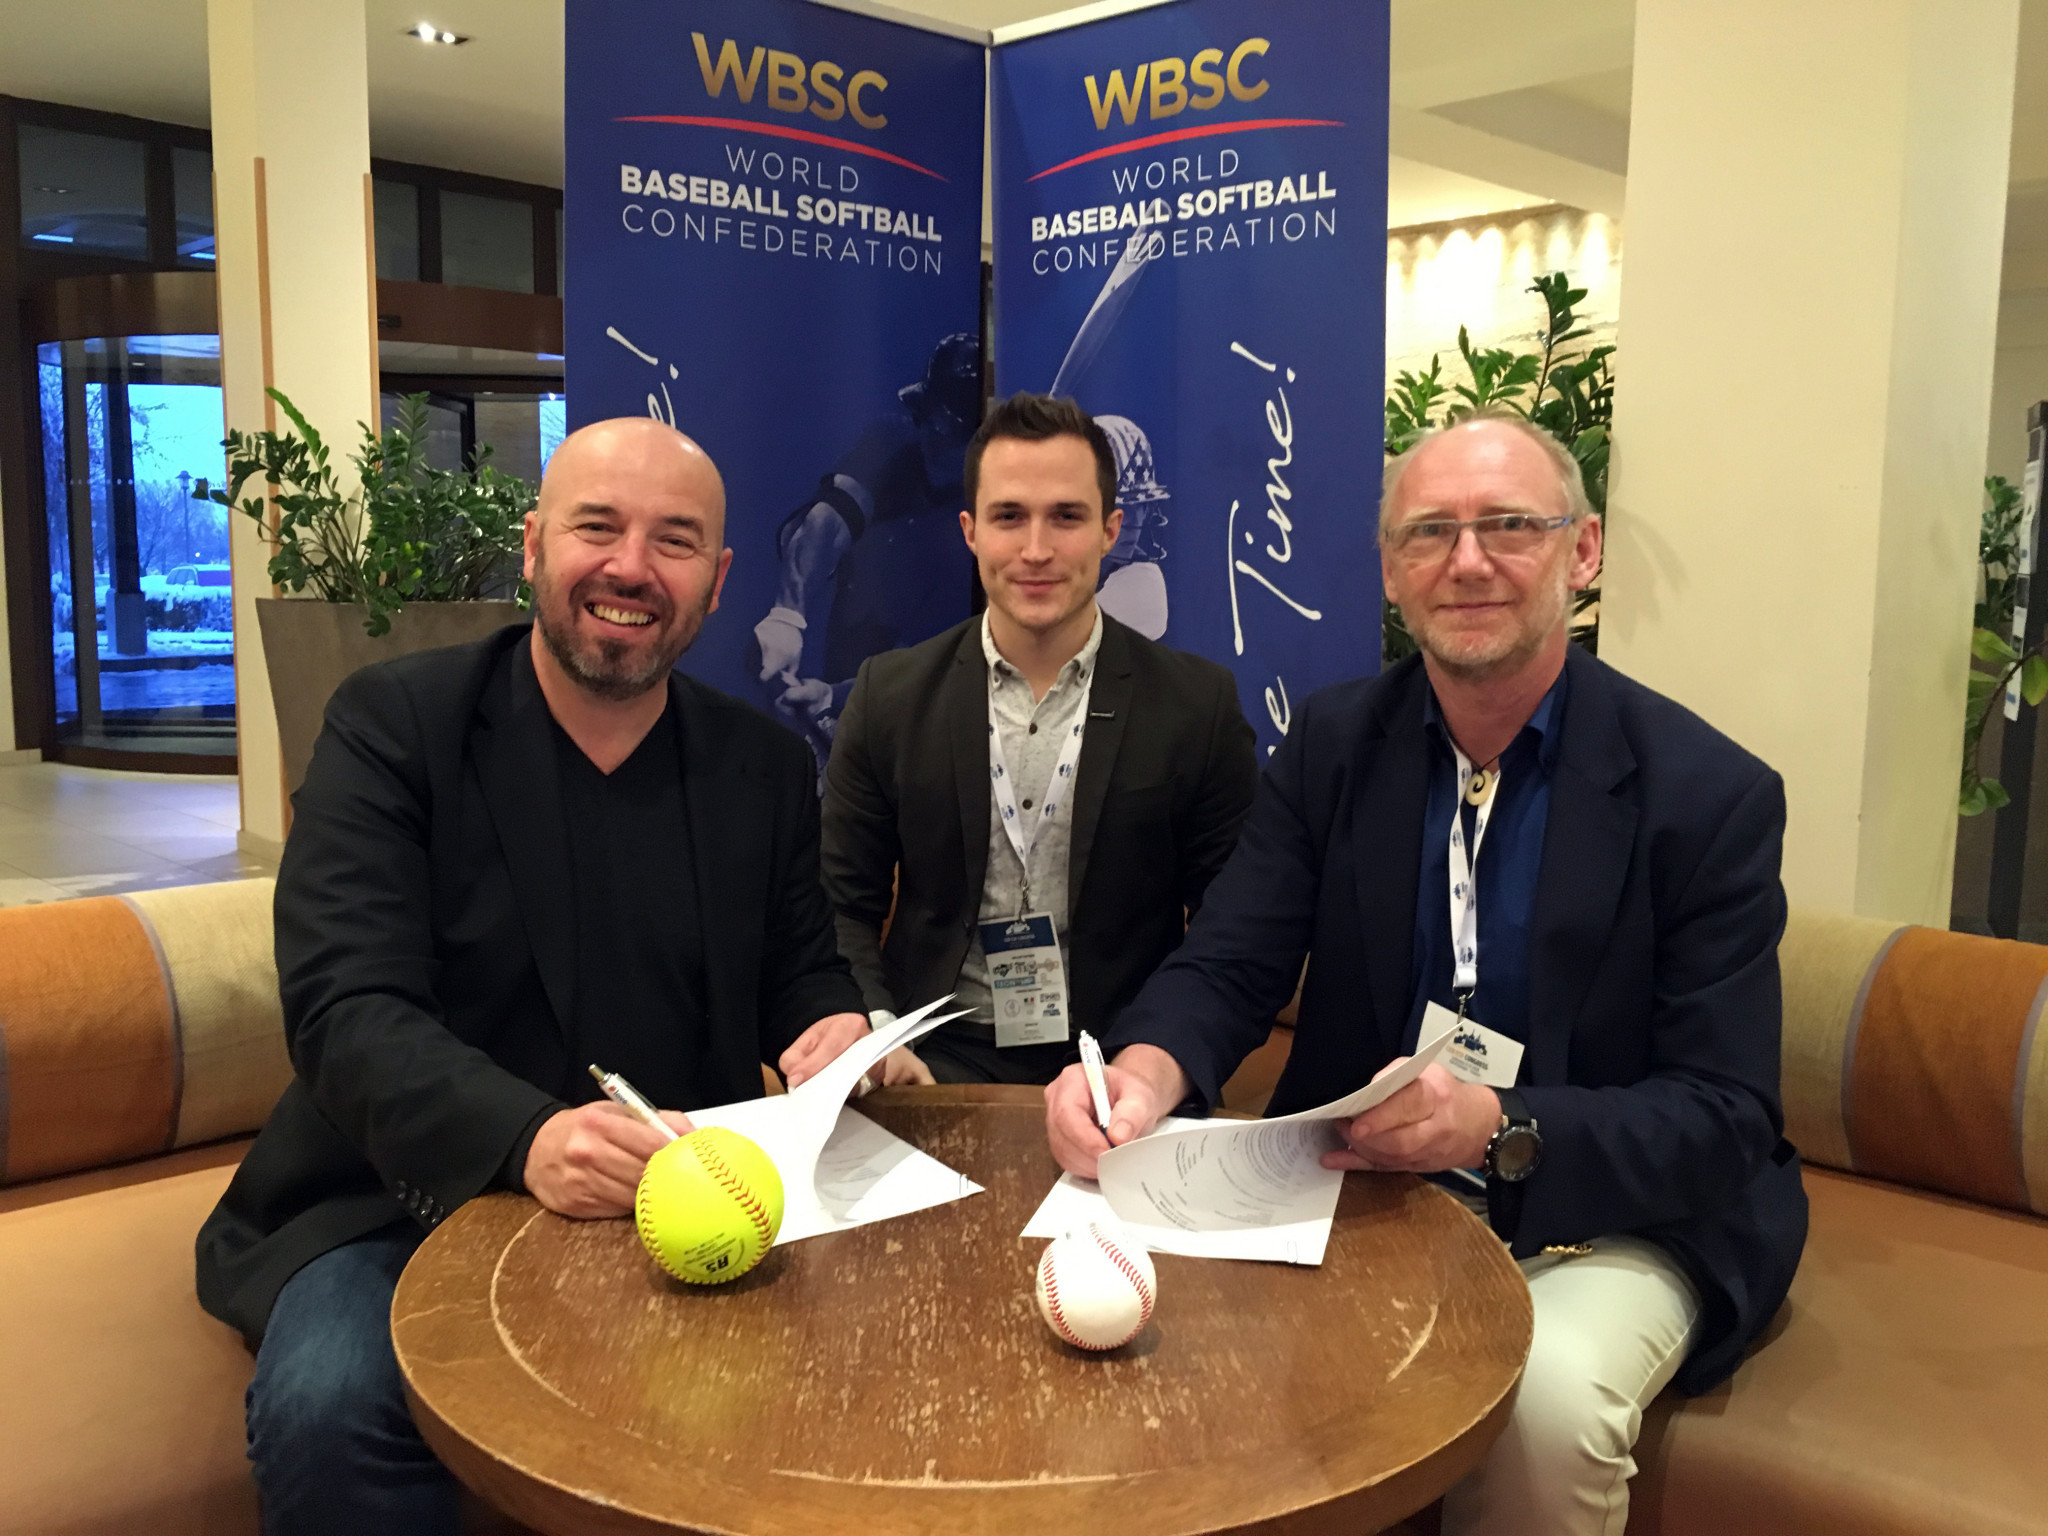 WBSC Europe announce partnership with Sportradar